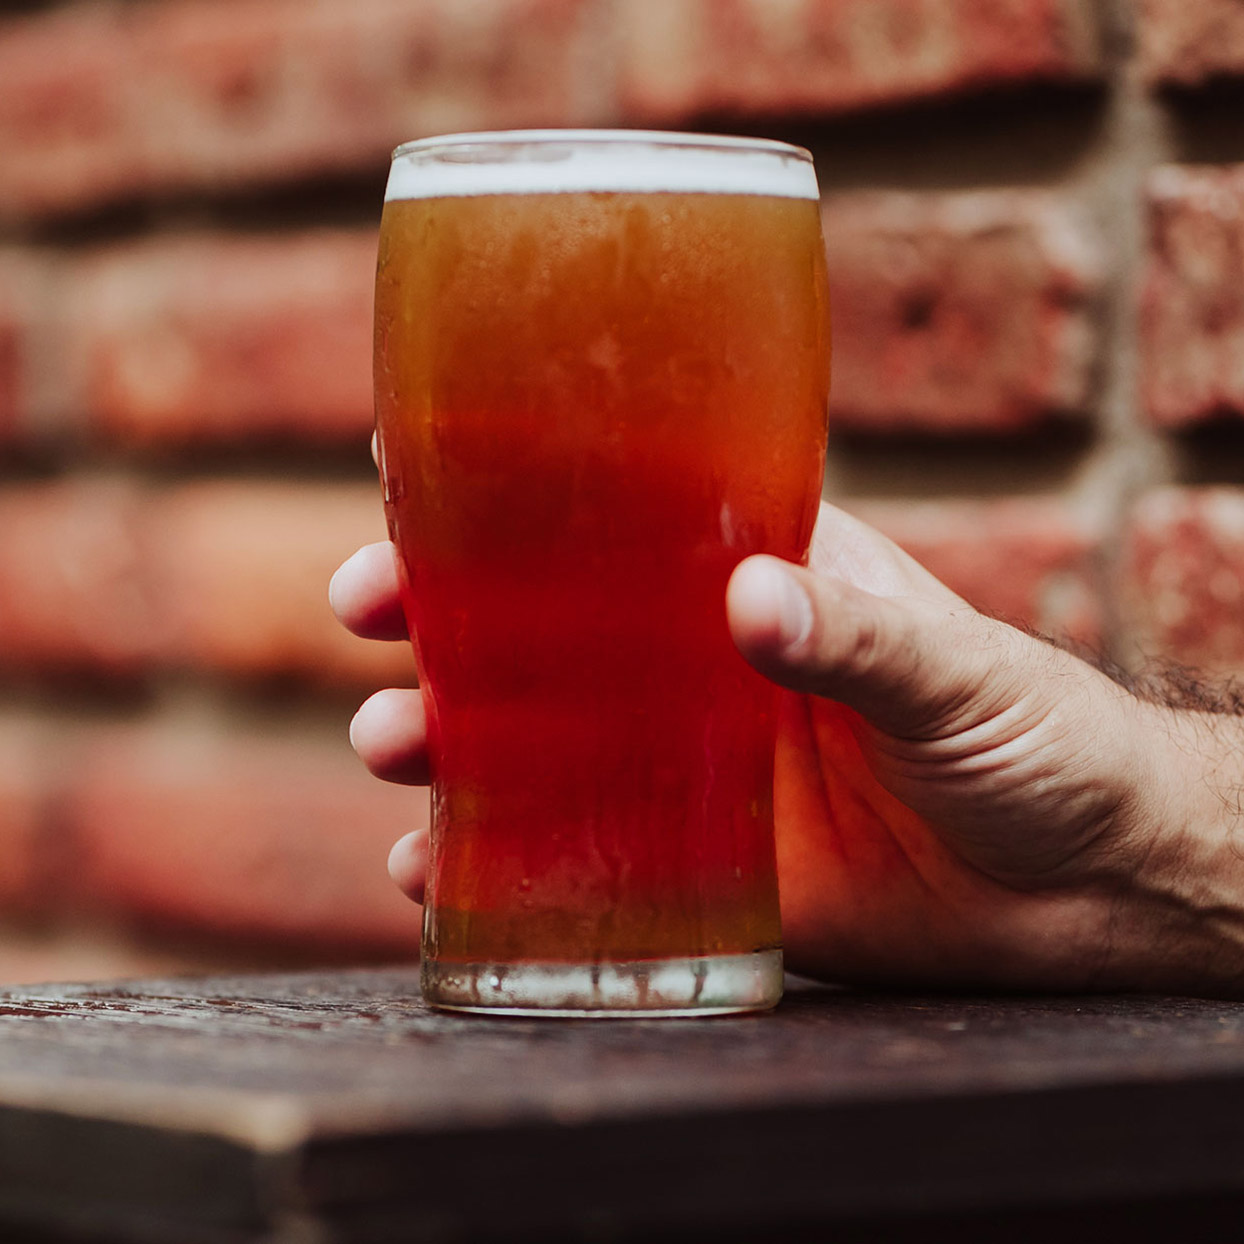 A Brooklyn Man Registered His Beer as an Emotional Support Animal